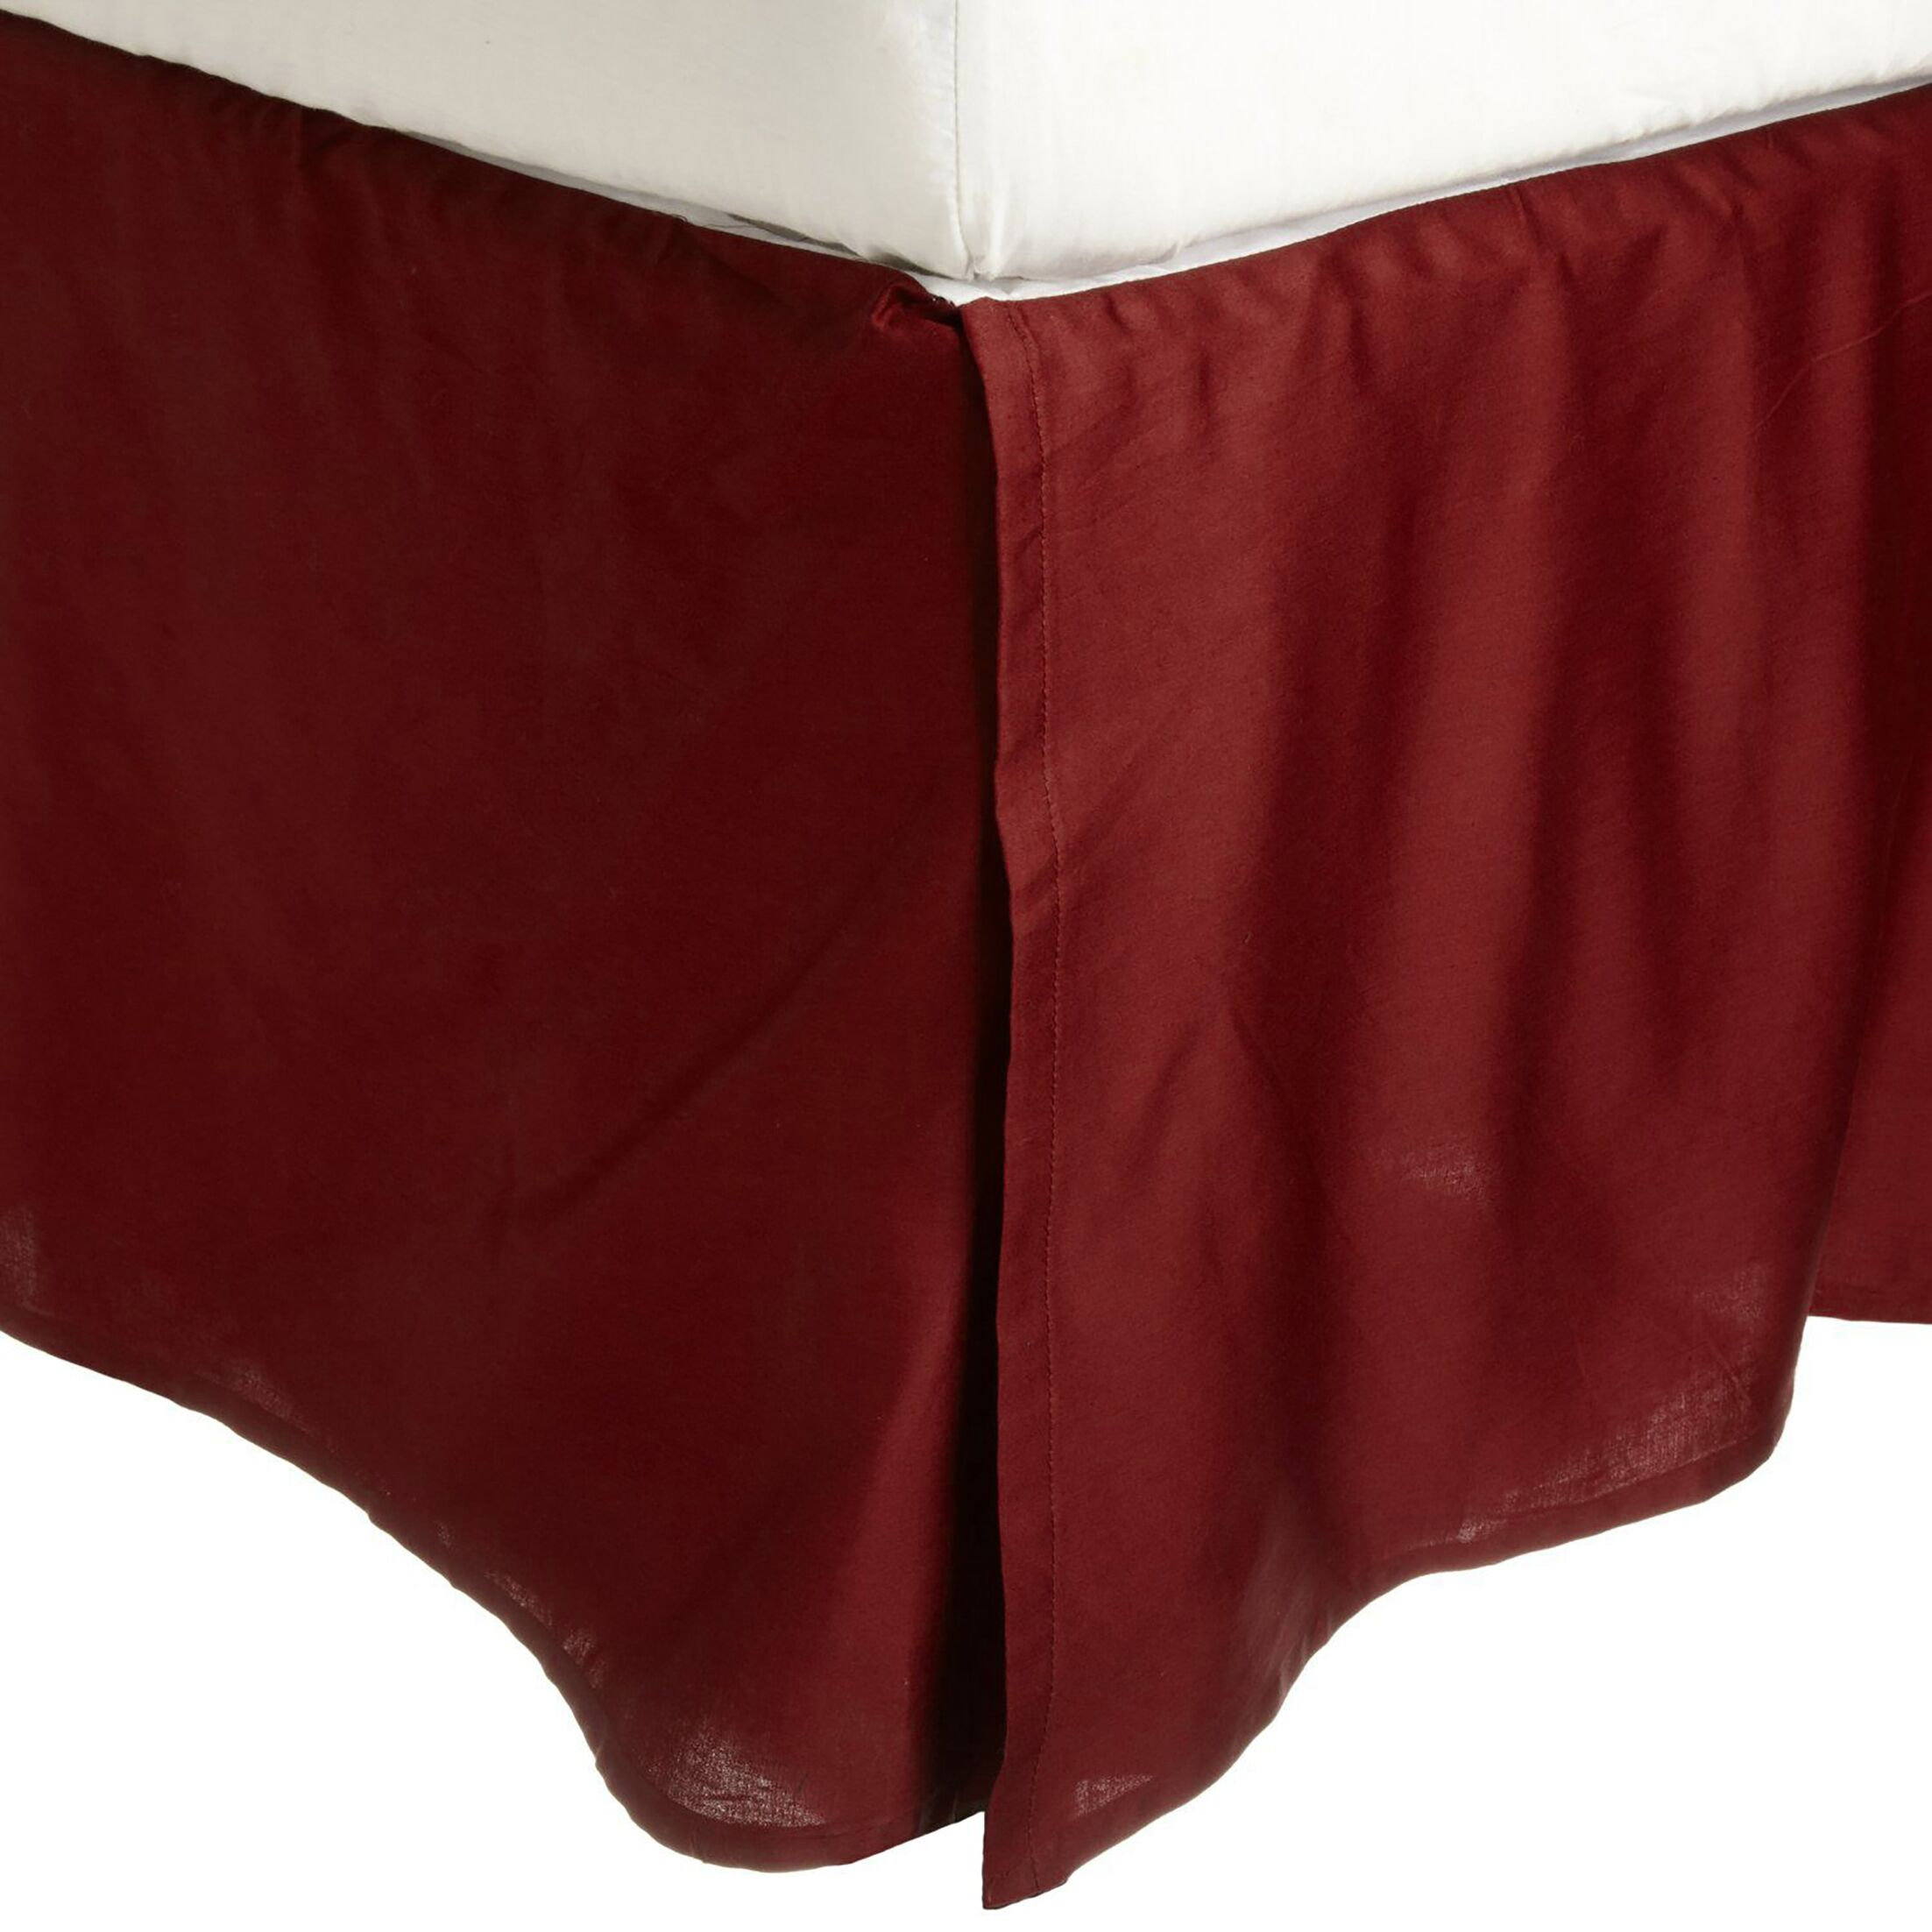 300 Thread Count 100% Cotton Bed Skirt Color: Burgundy, Size: King